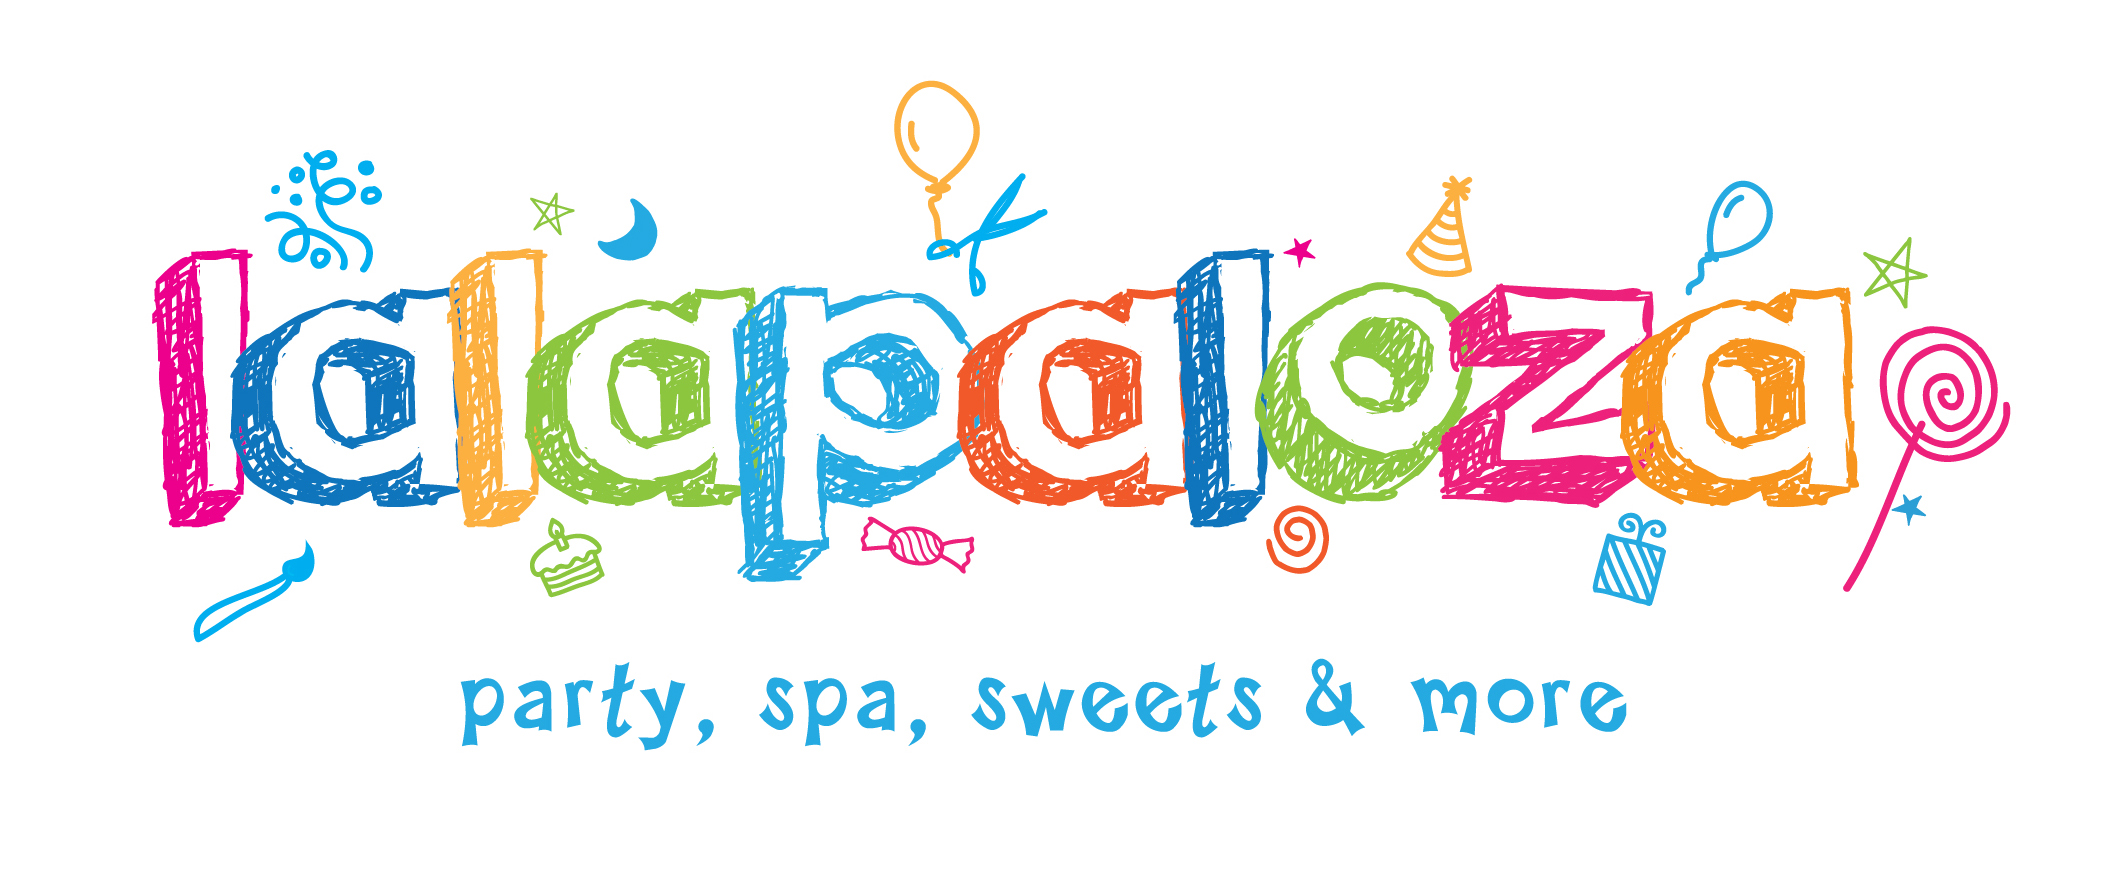 c59fd8aec236 Enjoy 10% discount when using your Ithmaar Bank credit and debit cards at  Lalapaloza Spa.